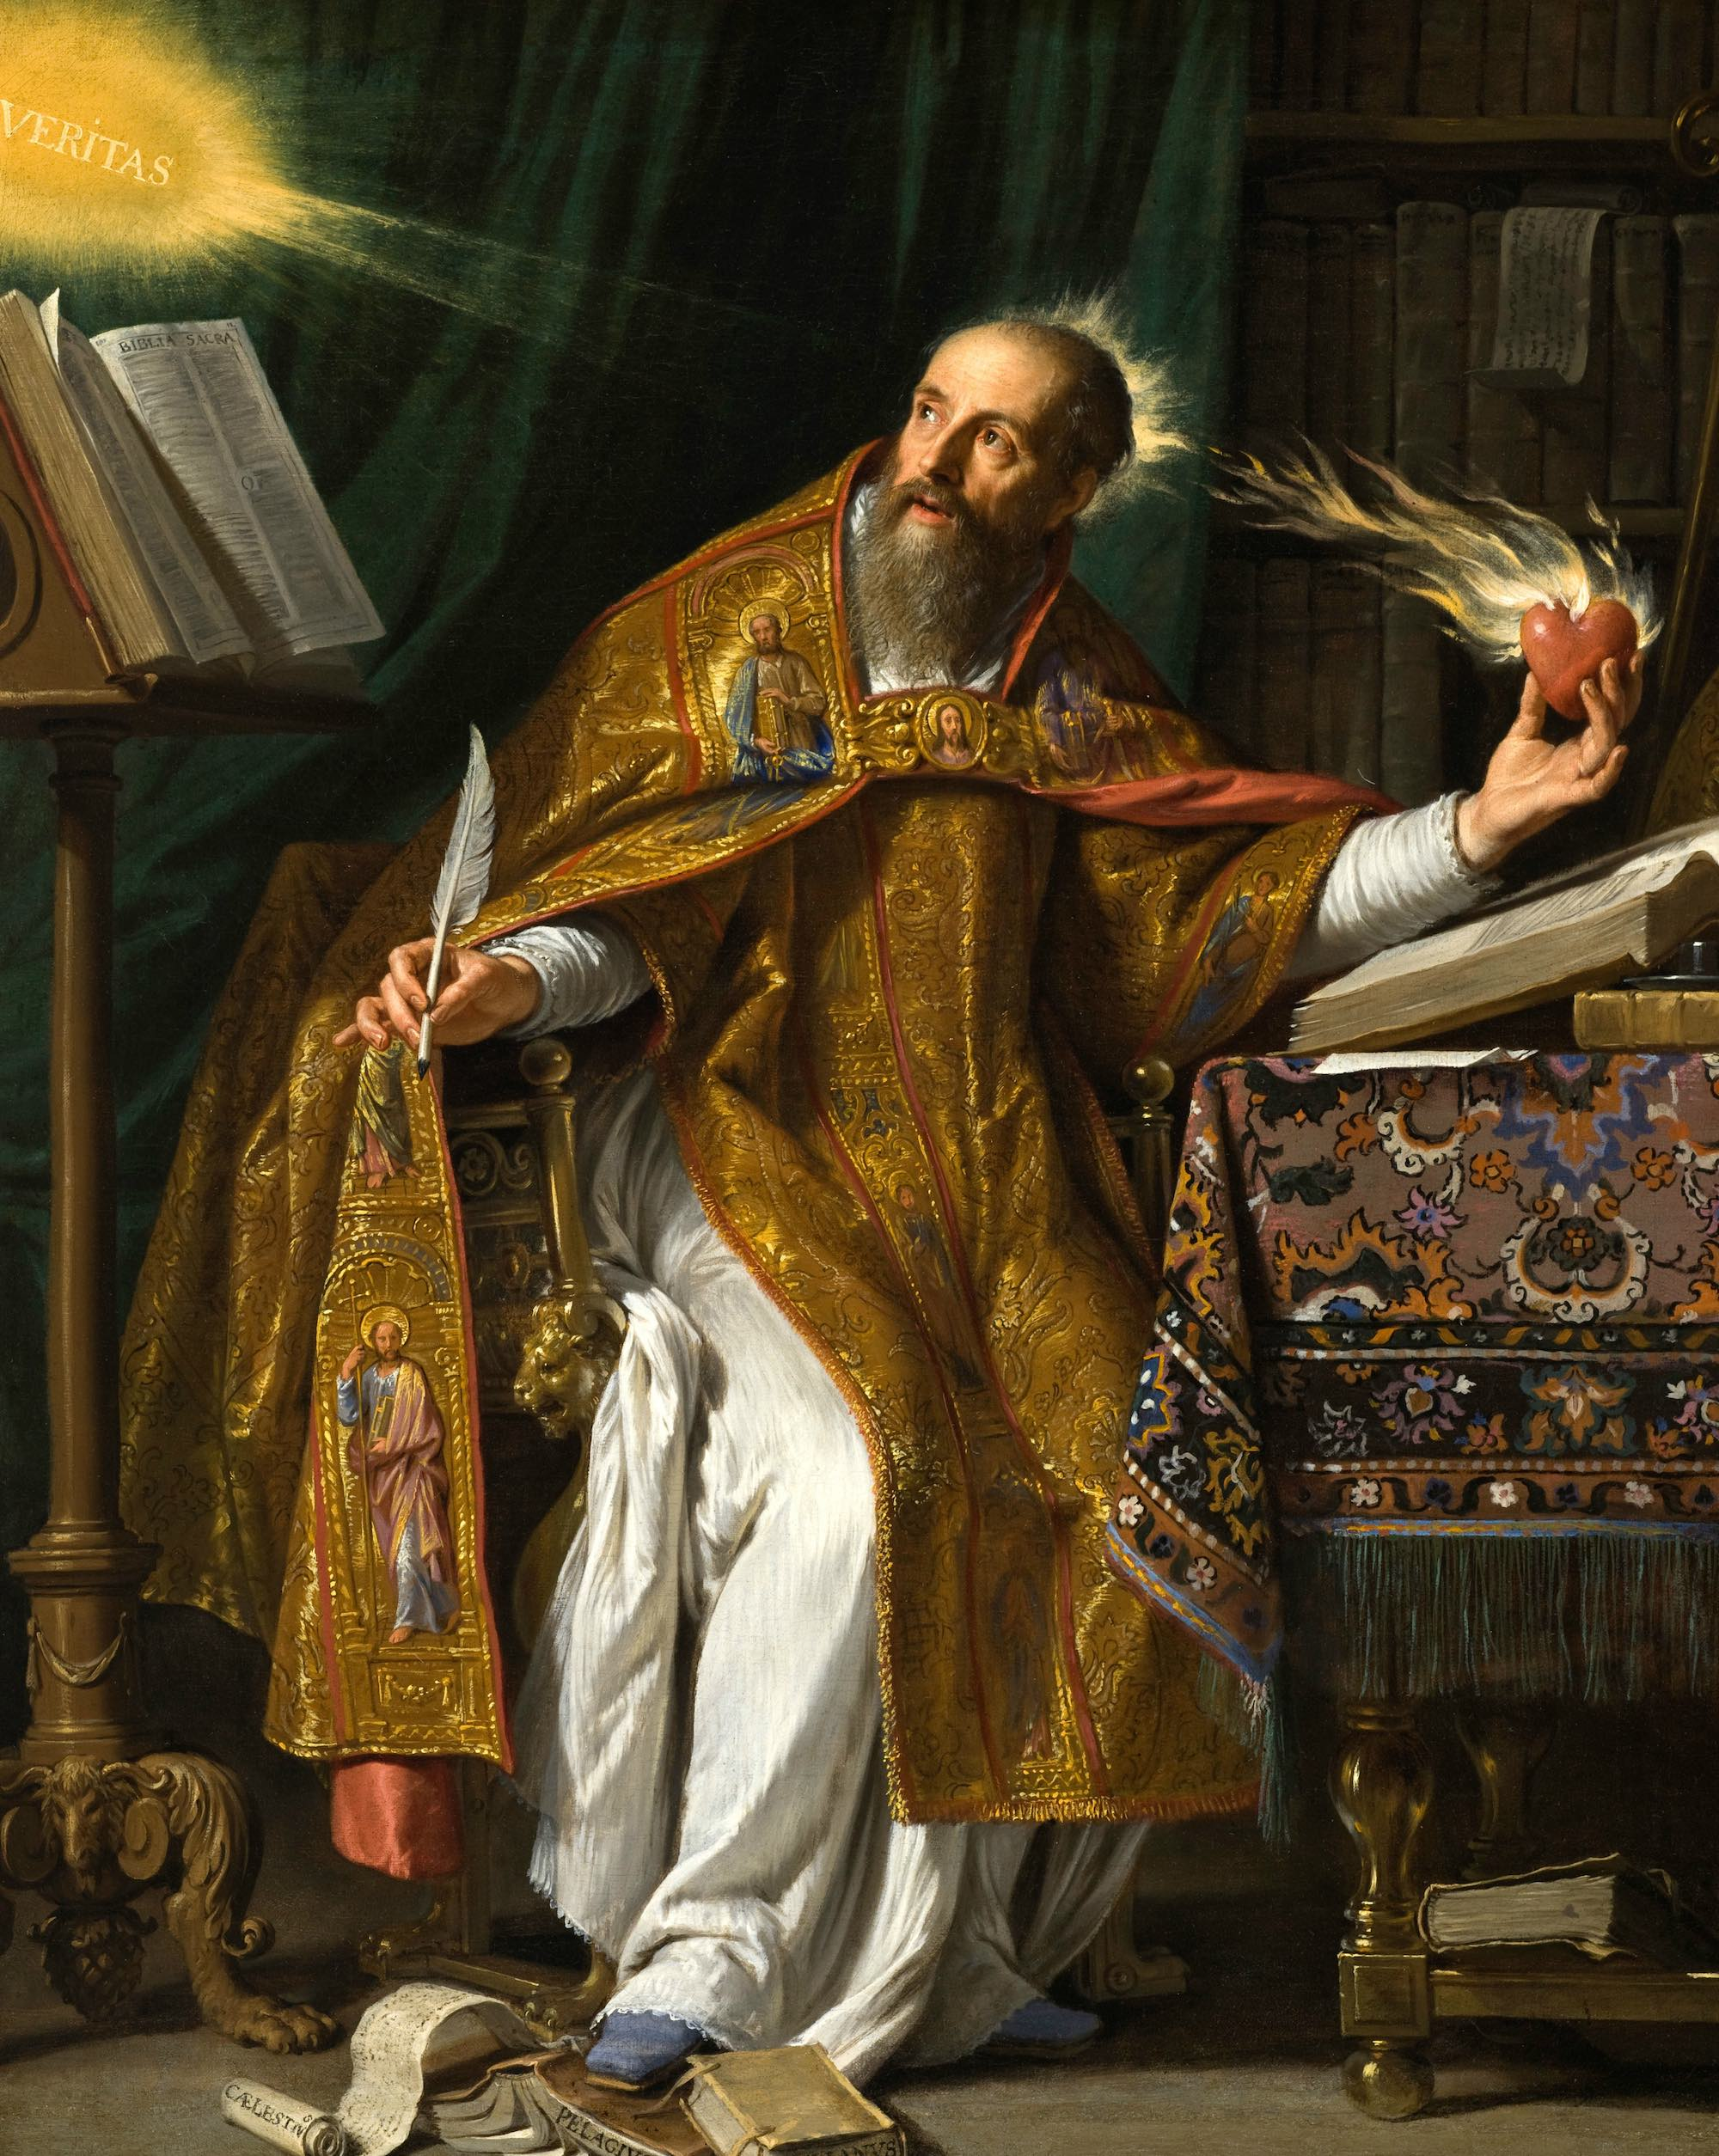 Augustine portrait by Philippe de Champaigne from the Los Angeles County Museum of Art